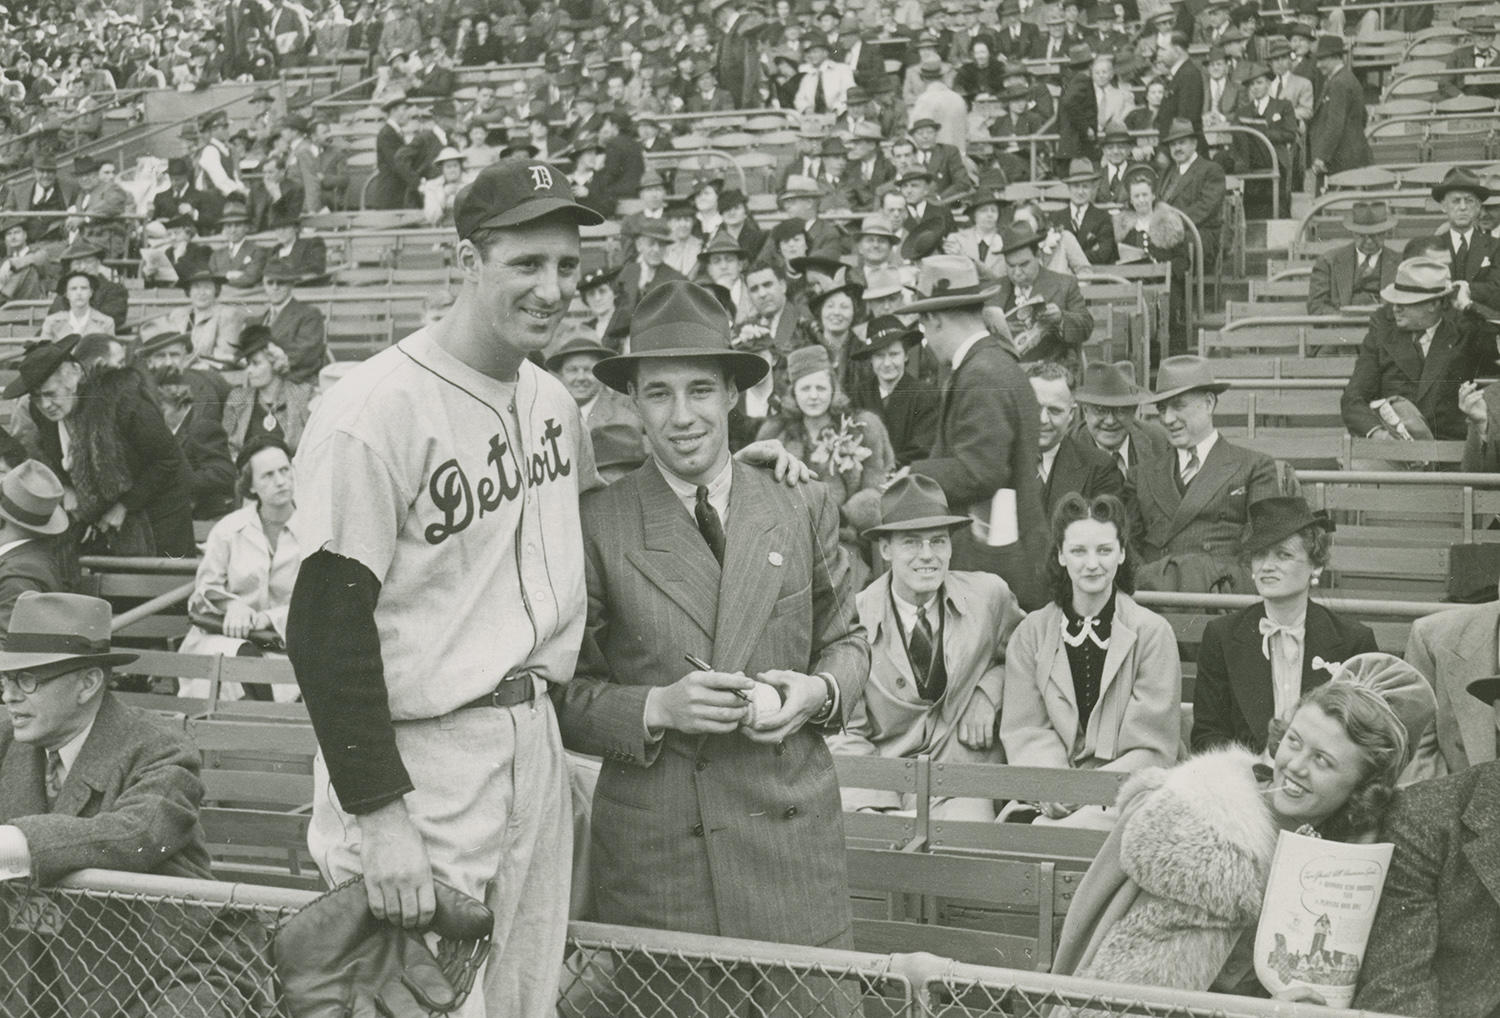 """Bob Feller poses for a photograph with Detroit Tigers' star Hank Greenberg. Feller, standing on the spectator side of the fence, is seen holding a baseball and marker, waiting for an autograph. <a href=""""https://collection.baseballhall.org/islandora/object/islandora%3A612130"""">PASTIME</a> (National Baseball Hall of Fame and Museum)"""